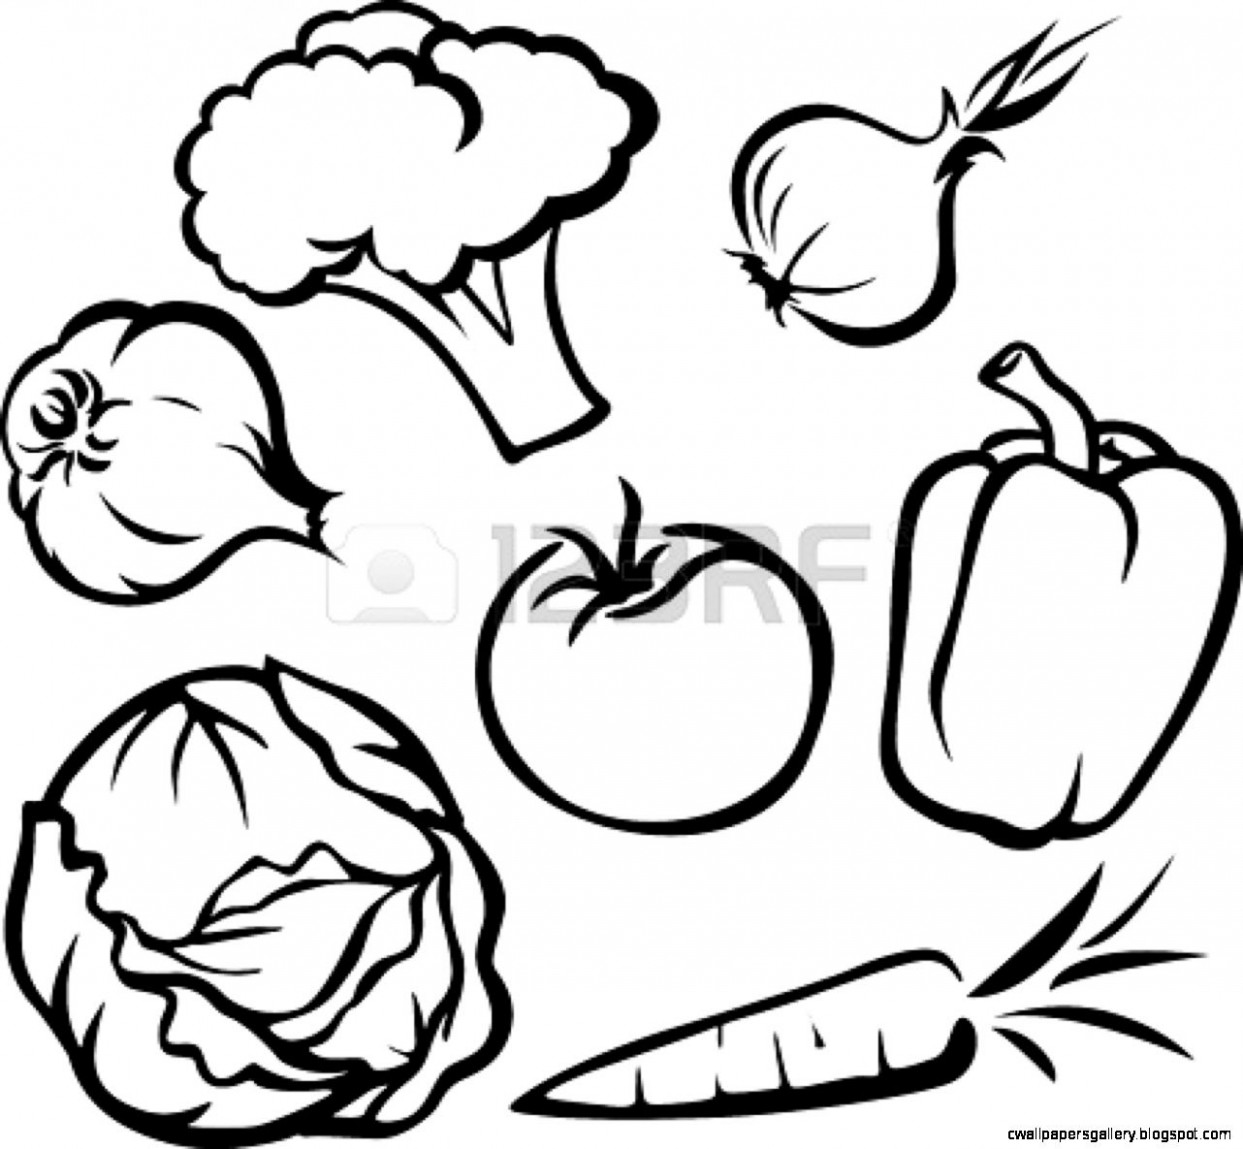 Vegetables  clipart black and white clip art royalty free download Leafy vegetables clipart black and white 7 » Clipart Station clip art royalty free download